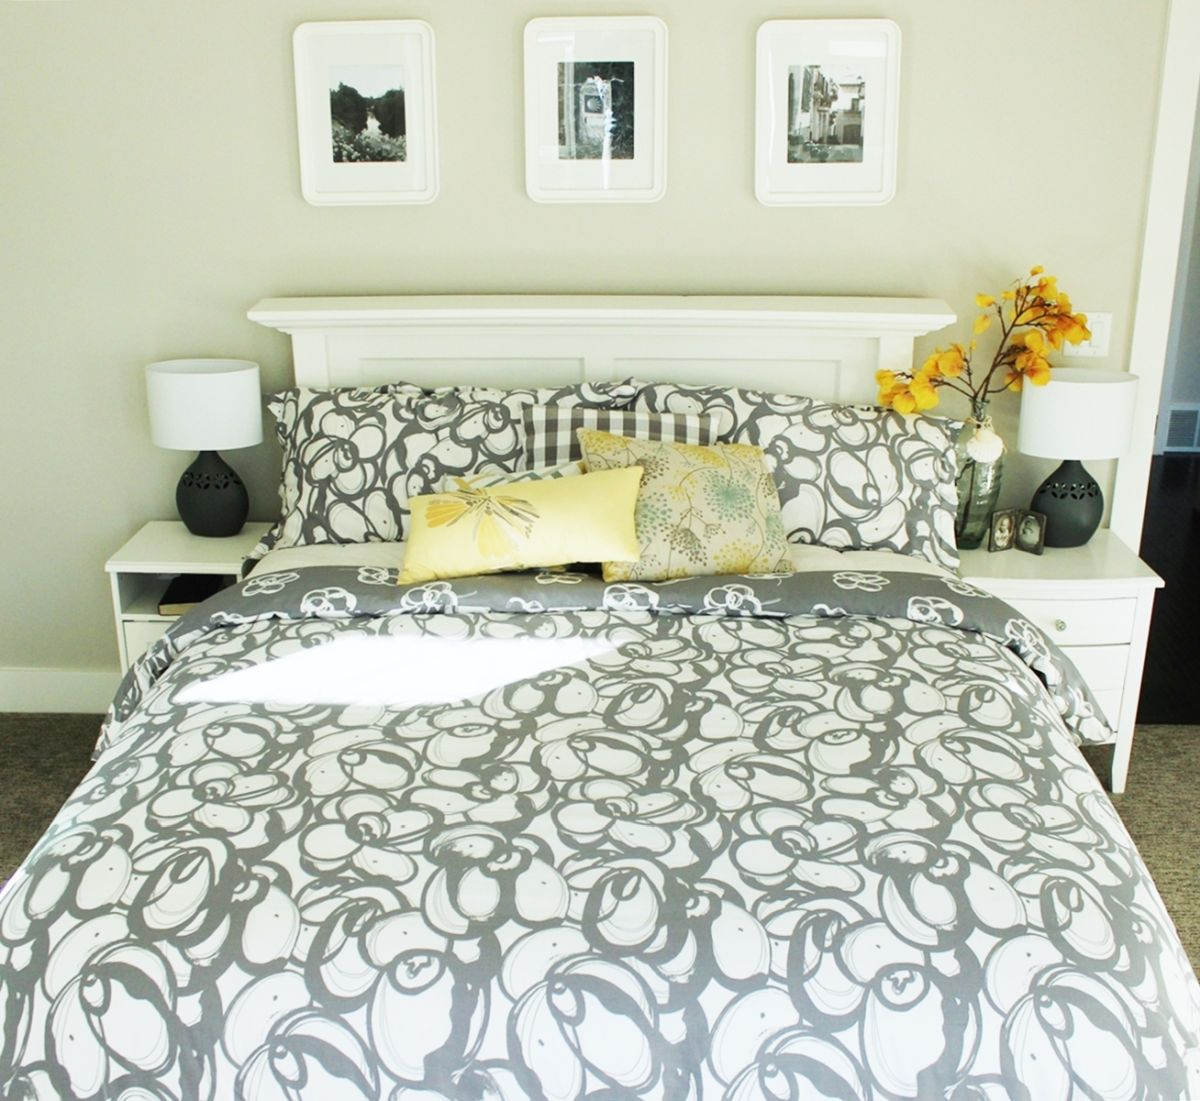 How to Make a Bed - Grey Bedding